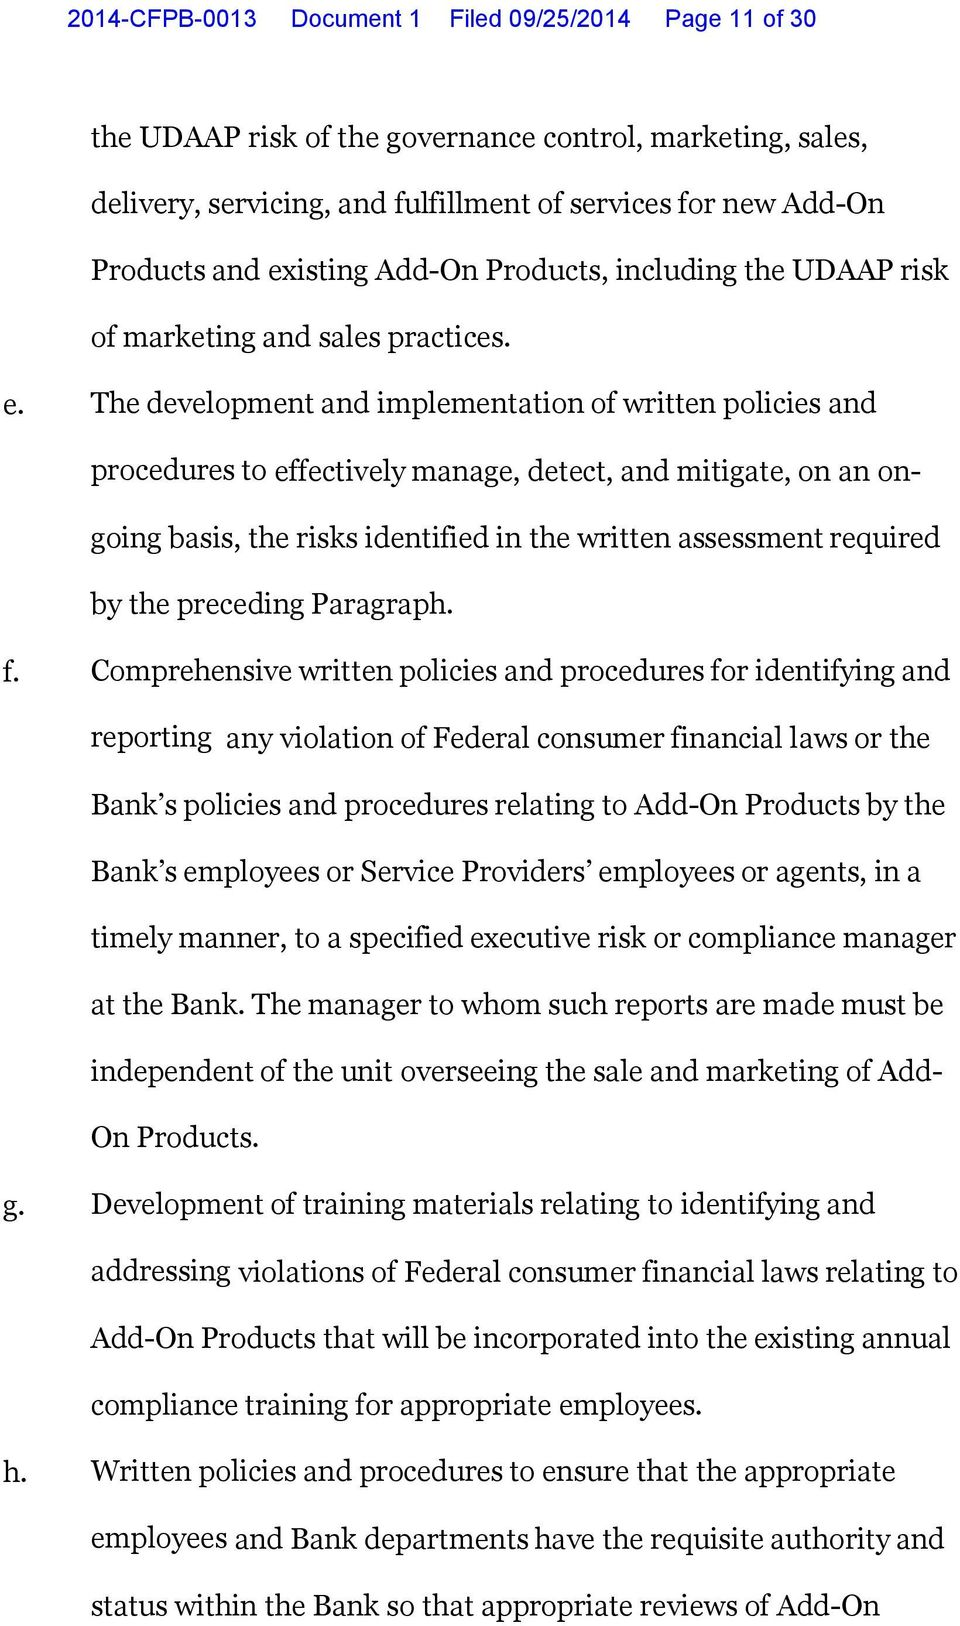 The development and implementation of written policies and procedures to effectively manage, detect, and mitigate, on an ongoing basis, the risks identified in the written assessment required by the